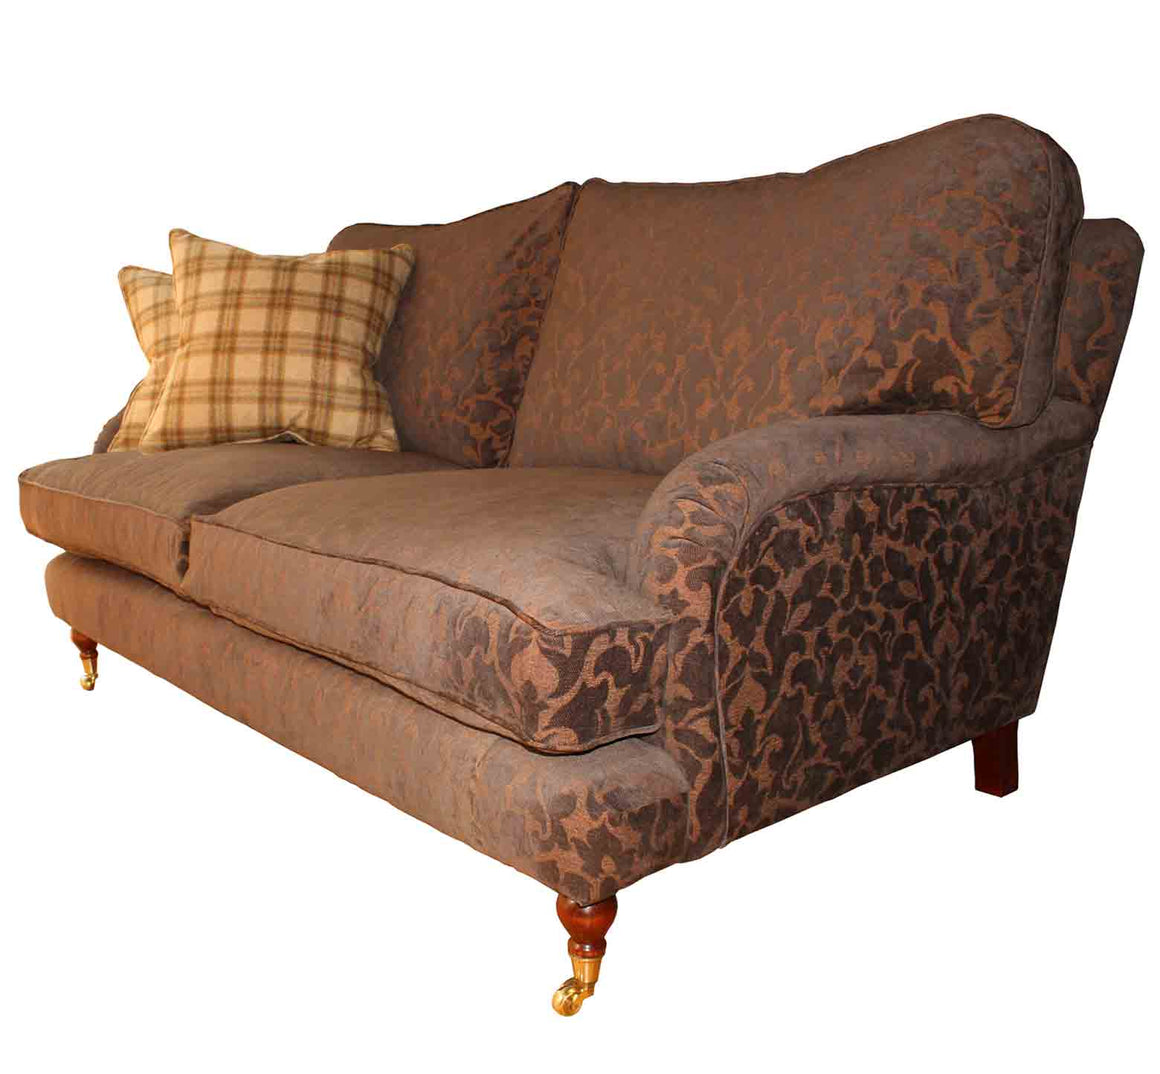 Burnham Cushion Back Sofa in Swaffer Venice